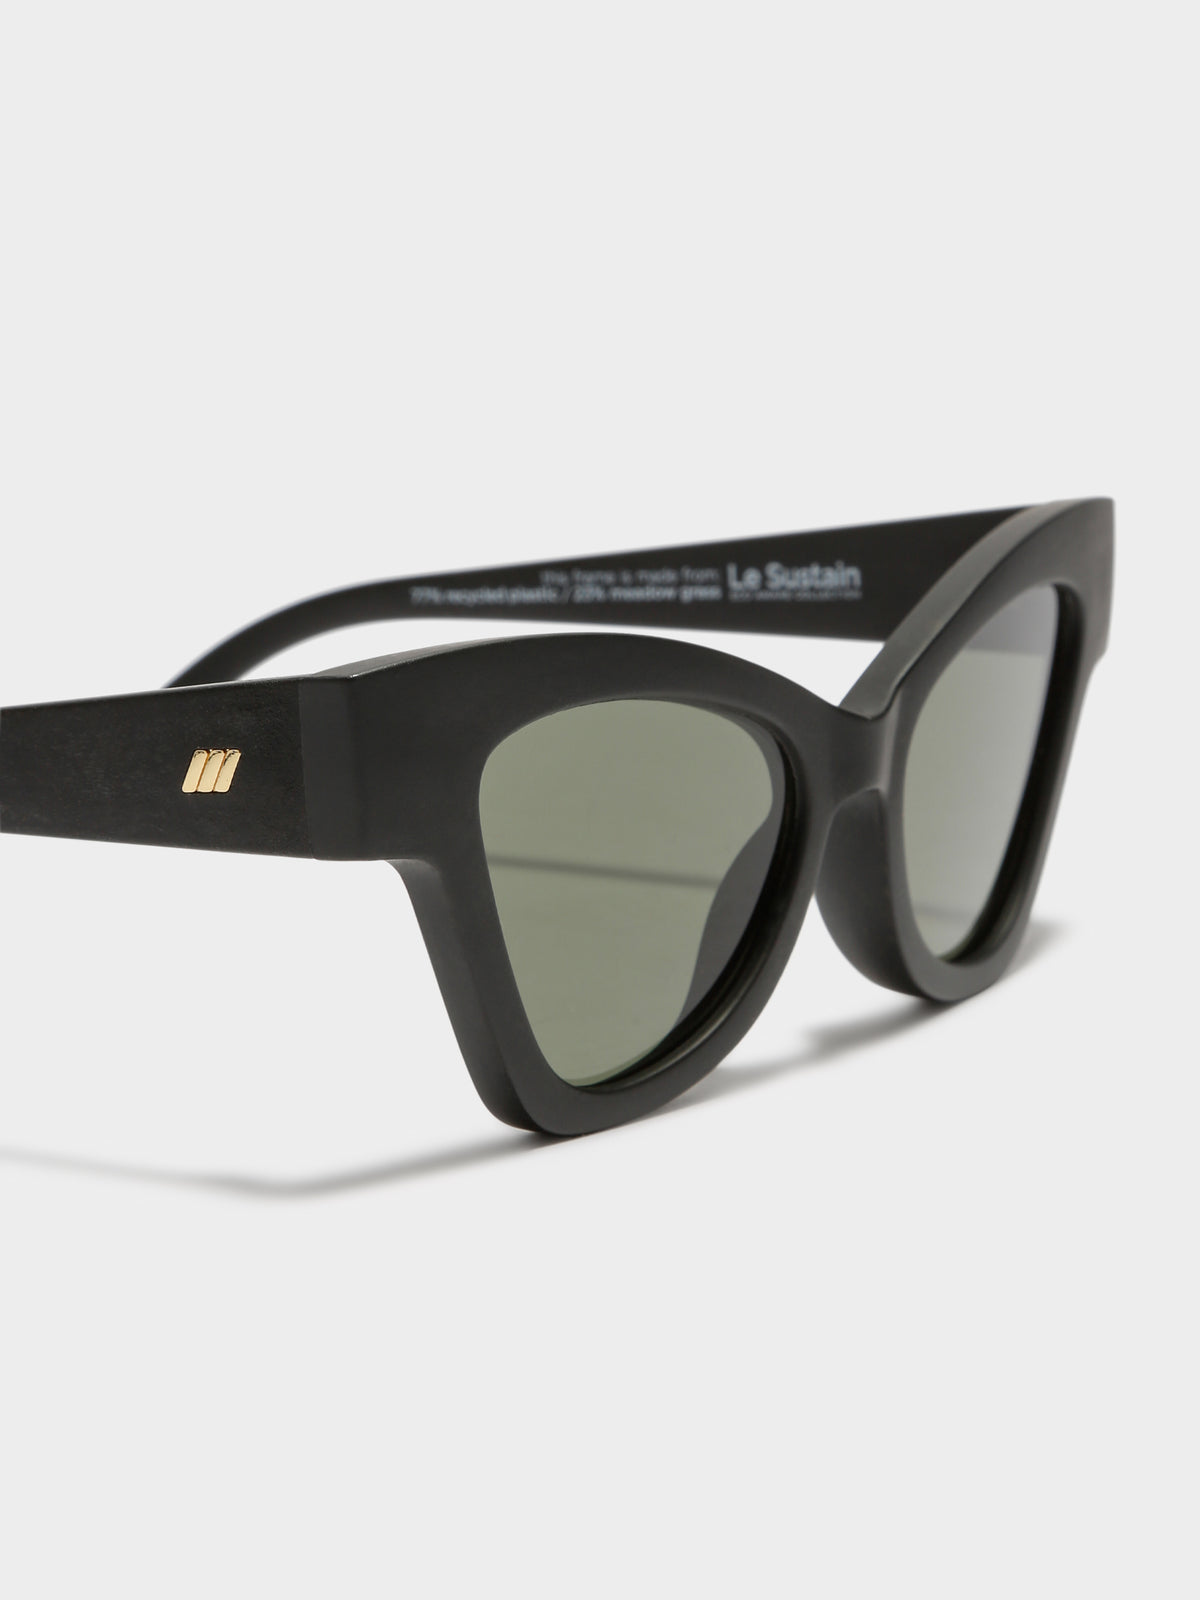 Hourgrass Sunglasses in Black